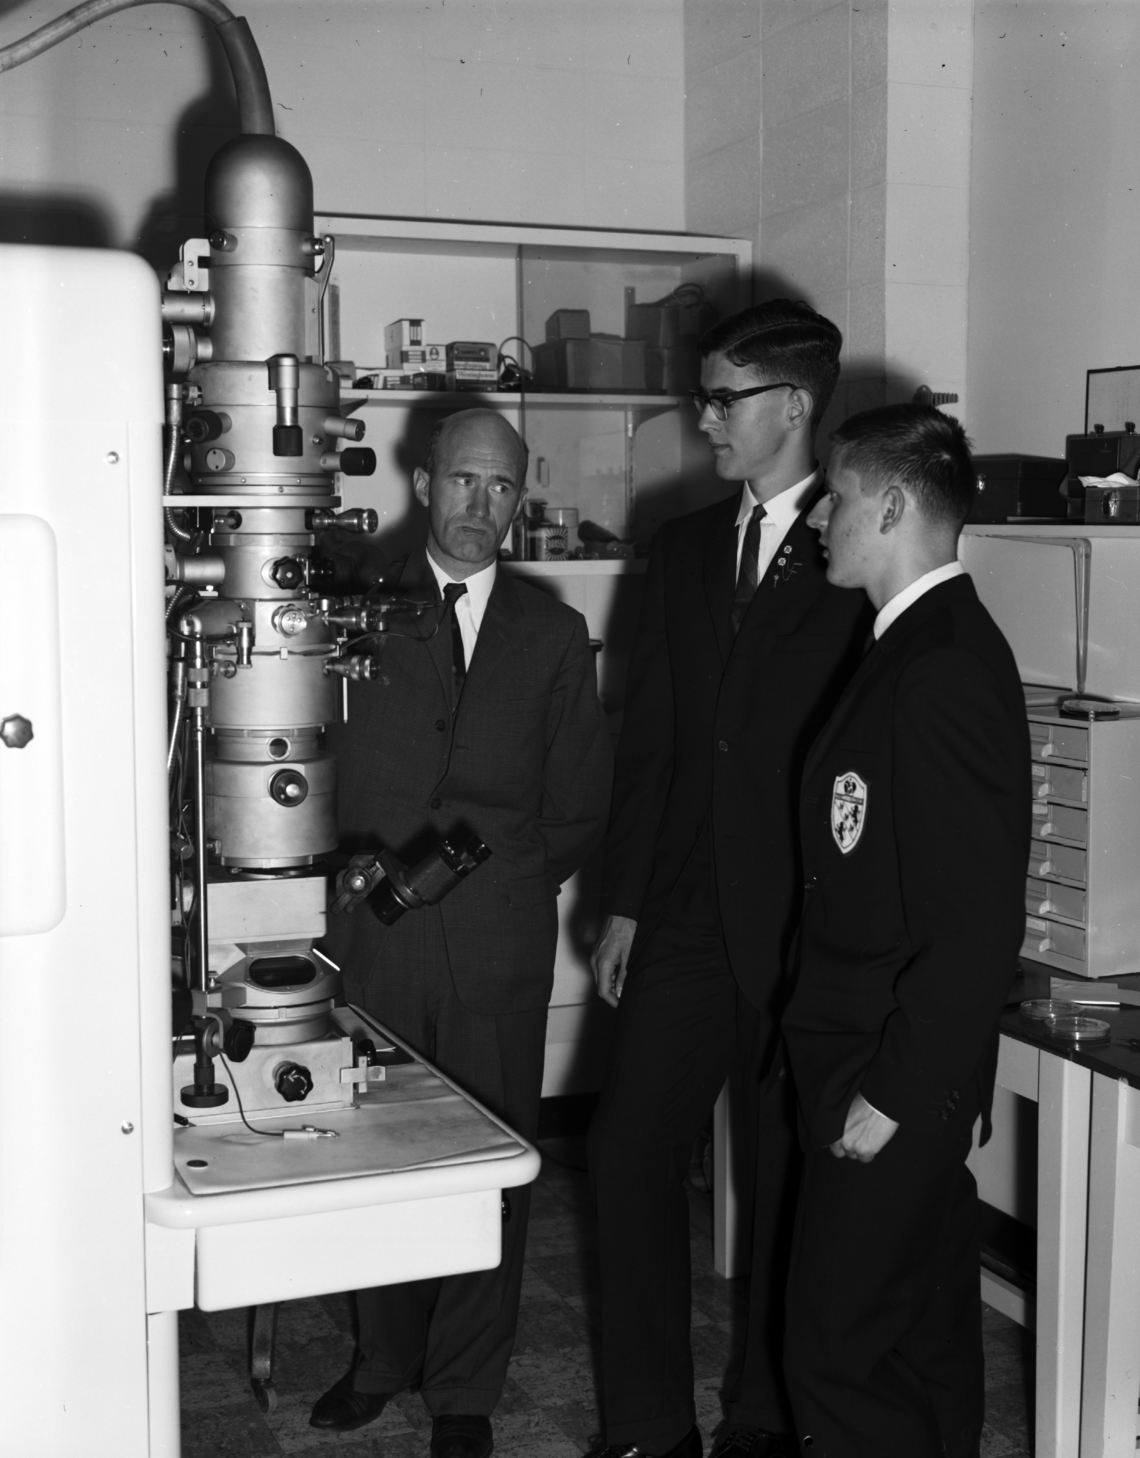 From left, Dr. Cyril E. Challice of the physics department with Canadian Association of Physicists prize winners James Prescott and Stephen Hernadi standing next to the university's electron microscope, 1960.